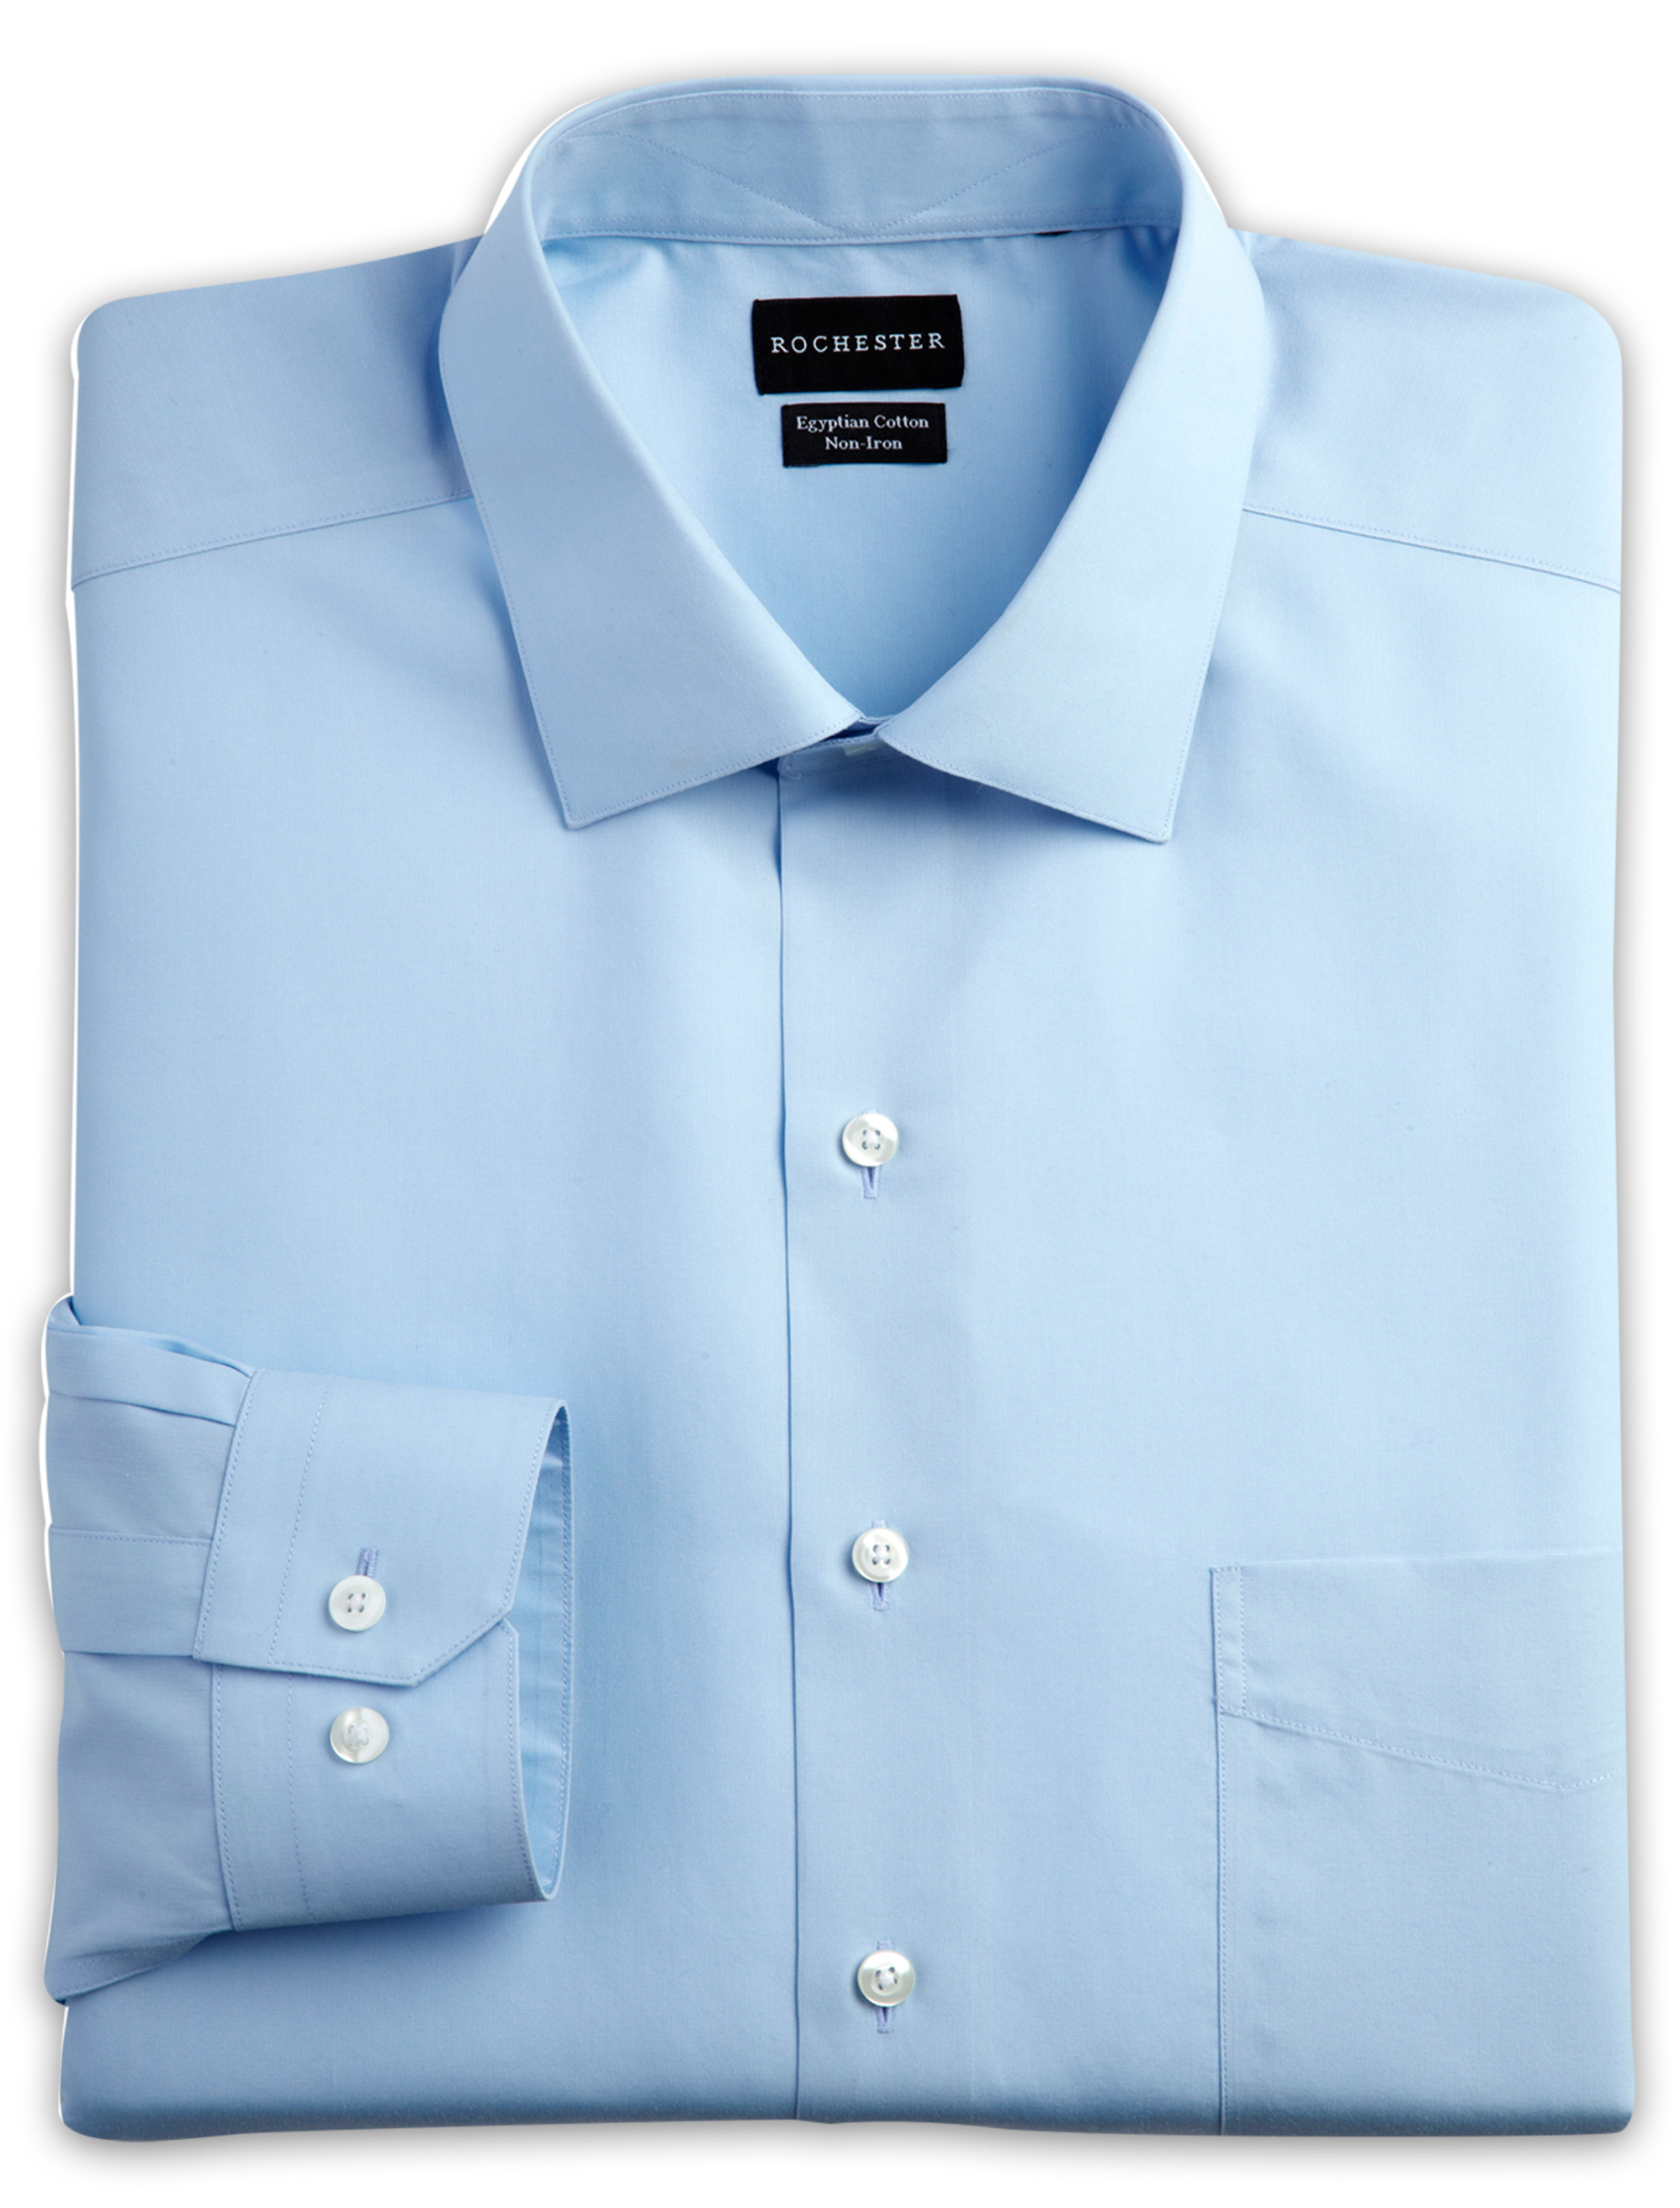 Rochester Egyptian Cotton Broadcloth Dress Shirt | Tuggl